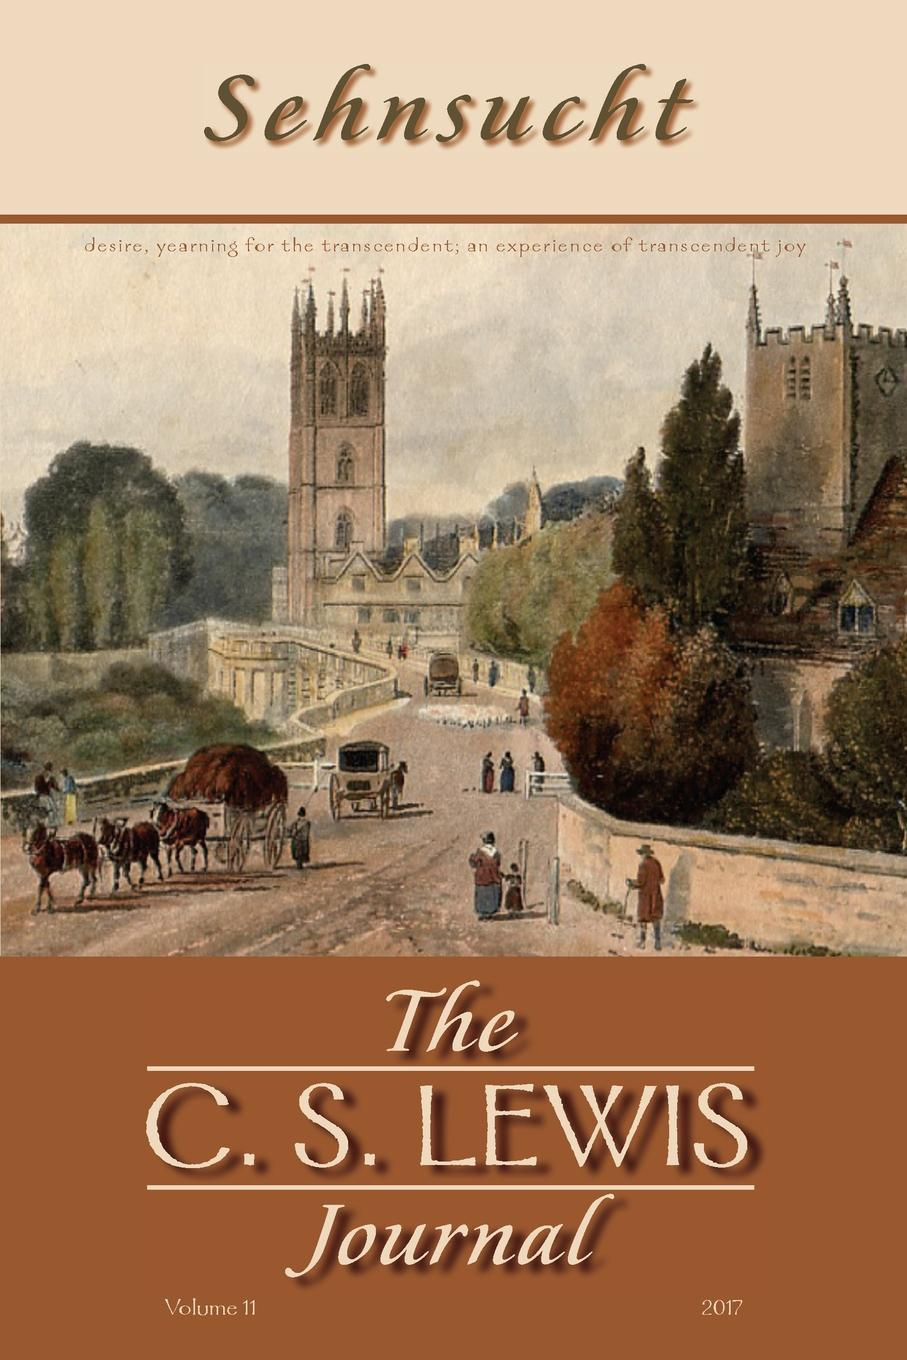 Bruce R. Johnson Sehnsucht. The C. S. Lewis Journal a glimpse of heaven through the eyes of c s lewis dr tony evans calvin miller randy alcorn j oswald sanders john wesley and other